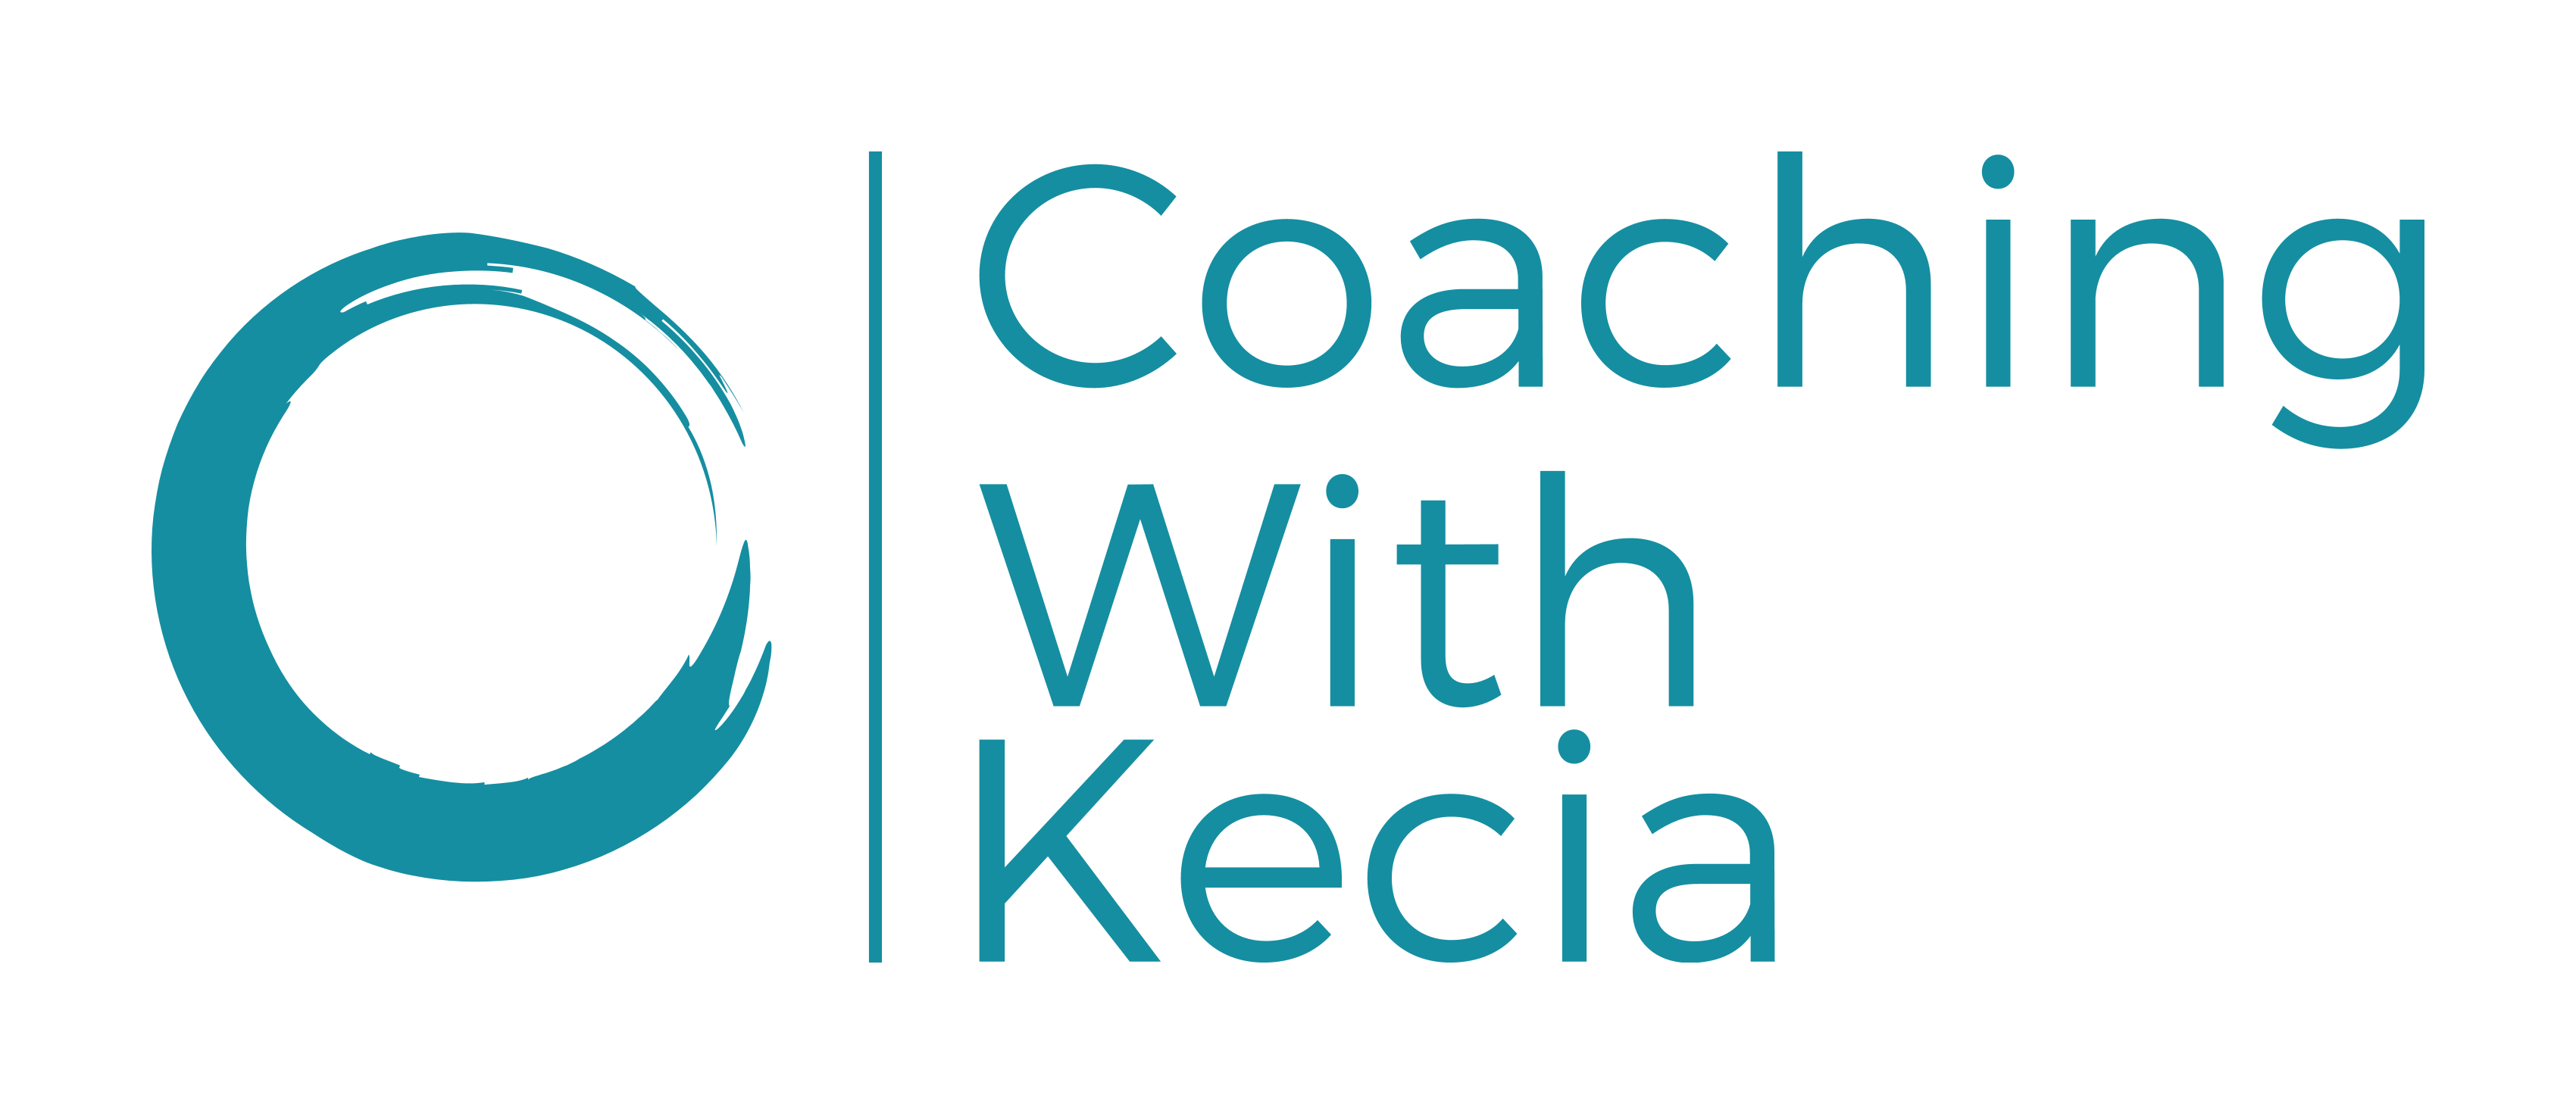 Coaching with Kecia